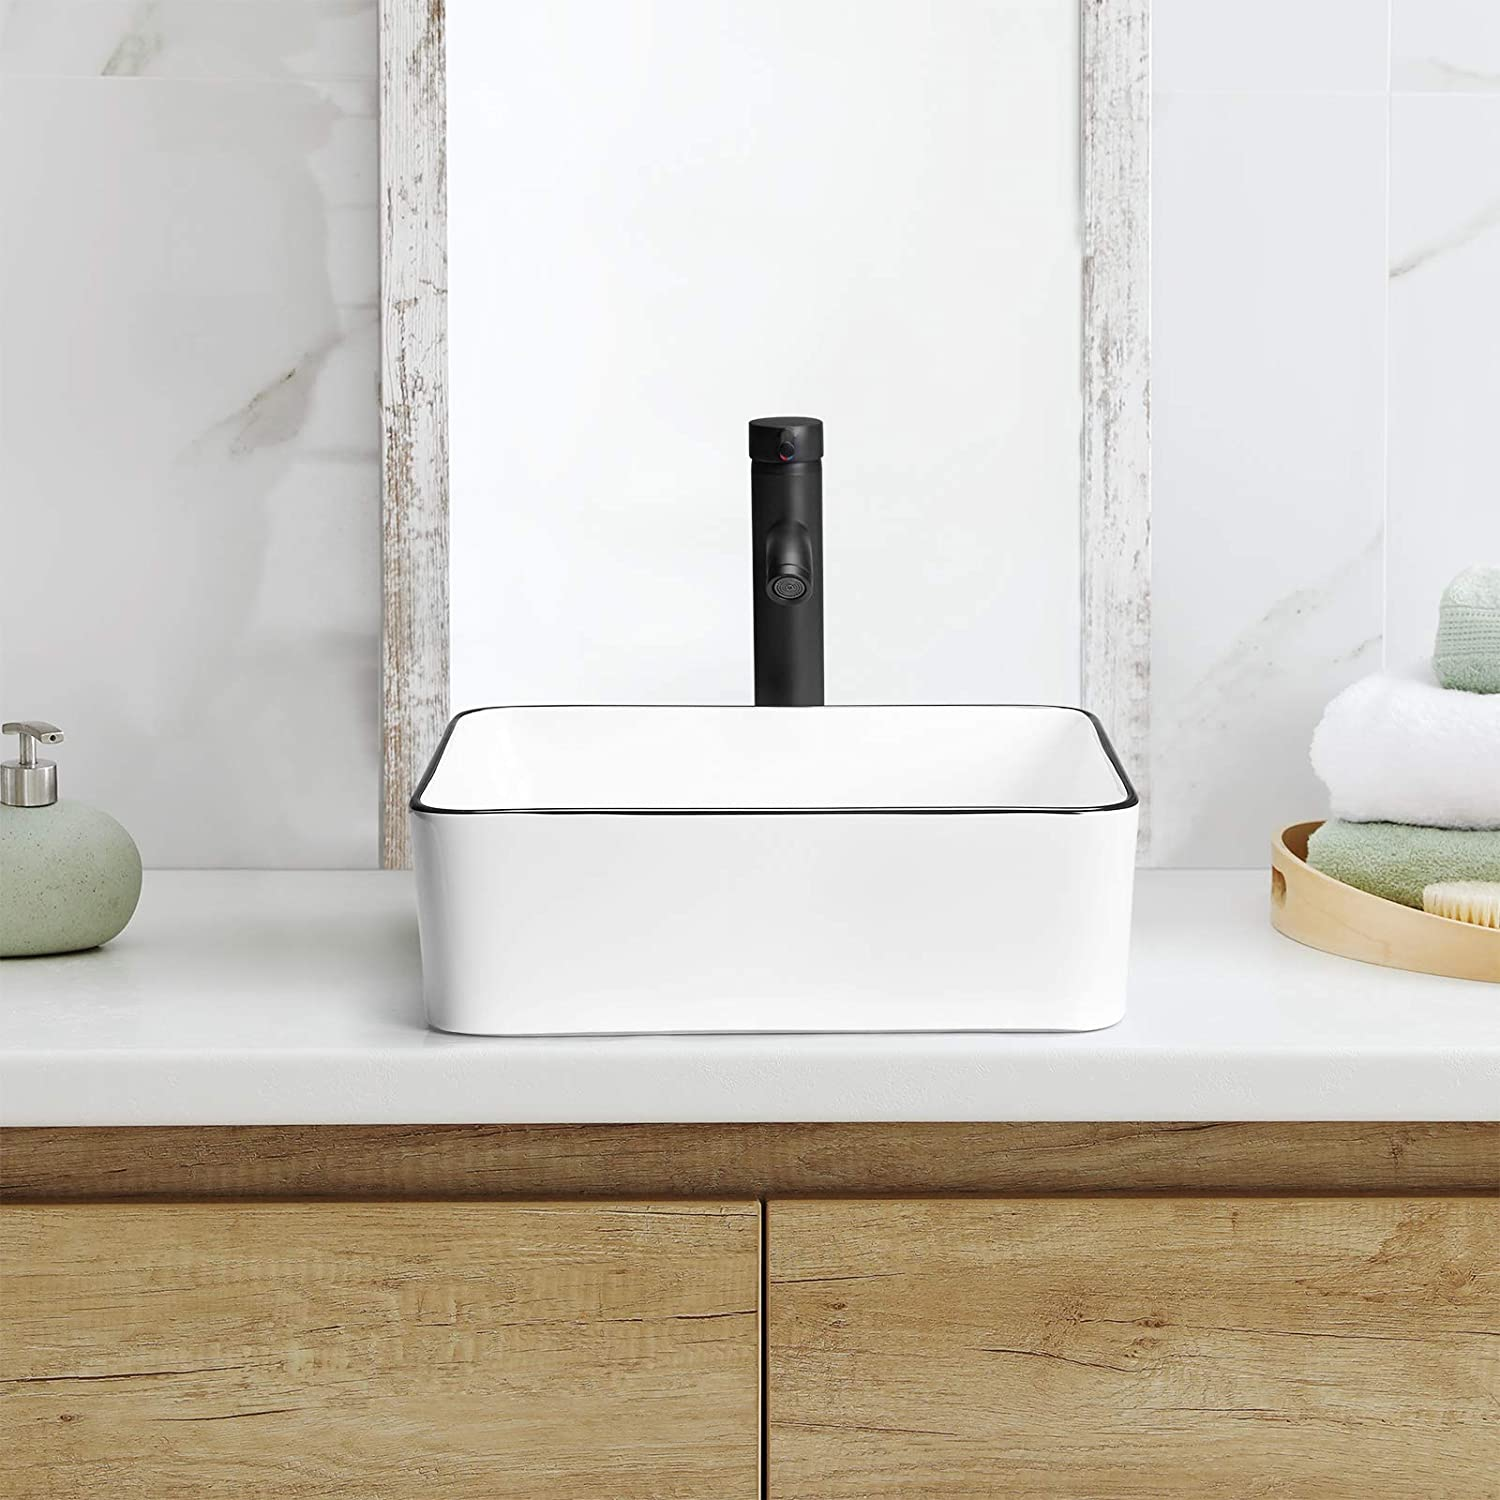 Buy Kswin Ceramic Rectangular Bathroom Vessel Sink Above Counter Vanity Sink With Faucet Combo White Body With Black Trim On The Top 16 X 12 Online In Germany B08s47q9nq